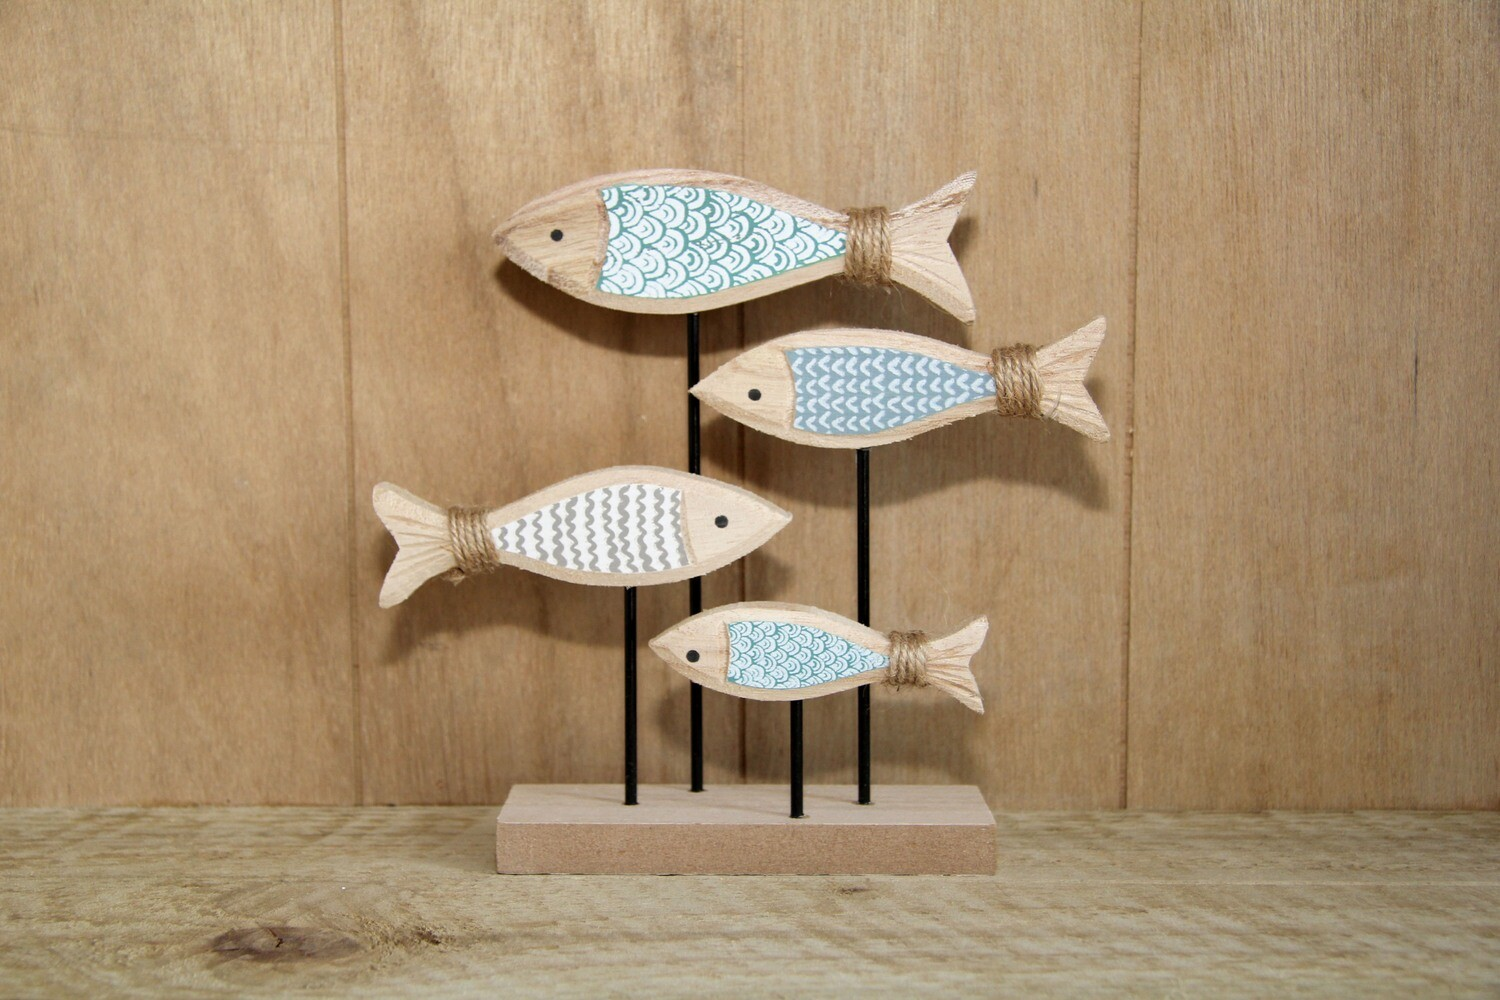 Wooden fish shoal